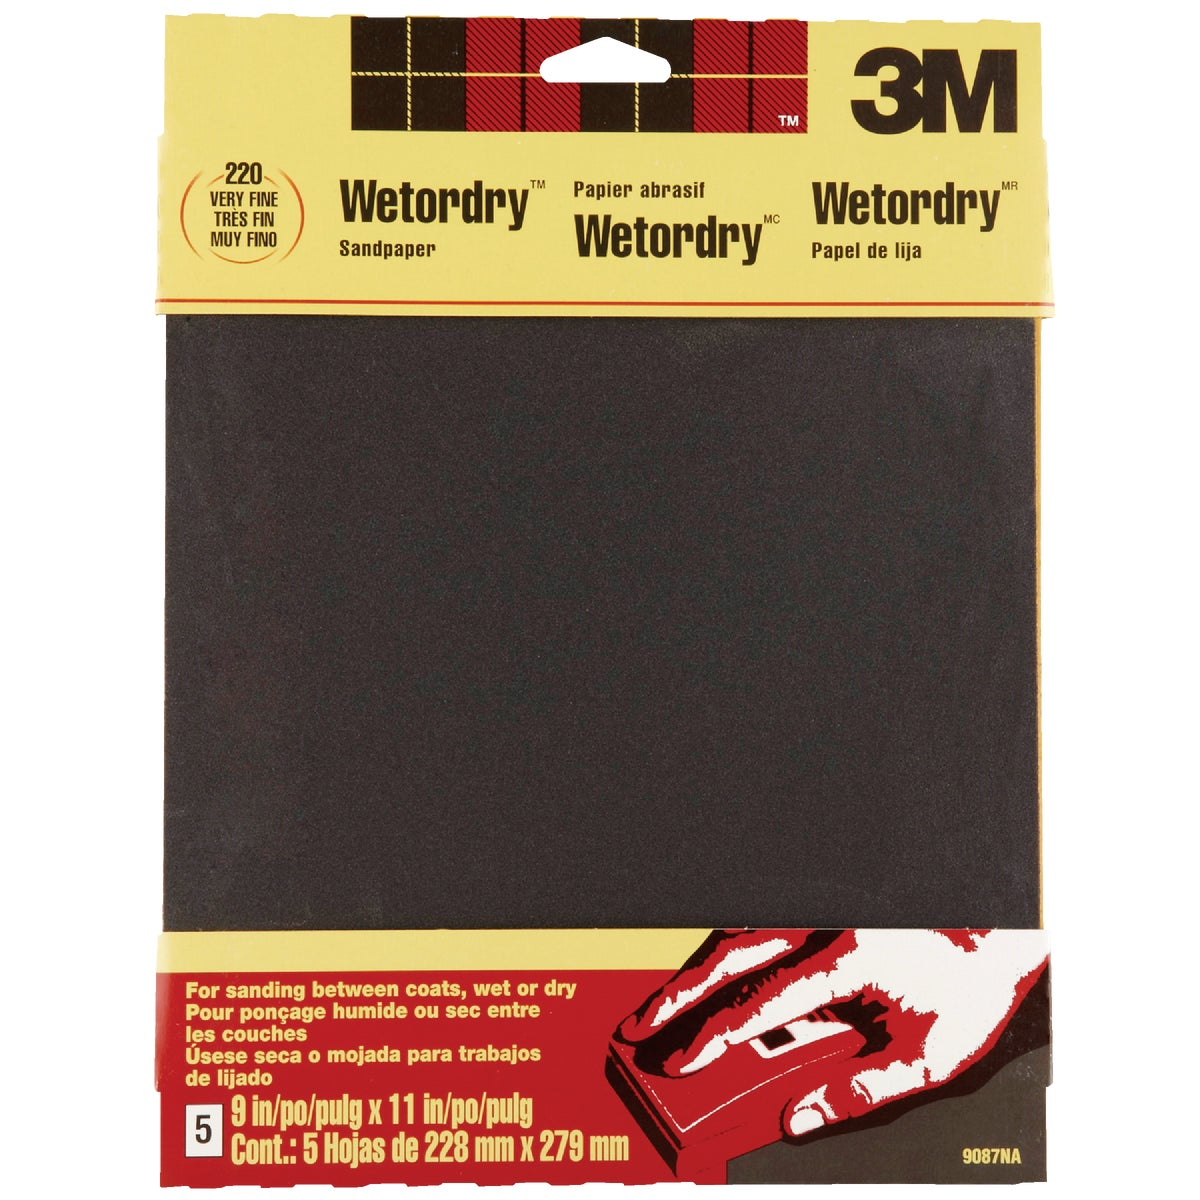 5PK VFINE WET SANDPAPER - 9087 by 3m Co